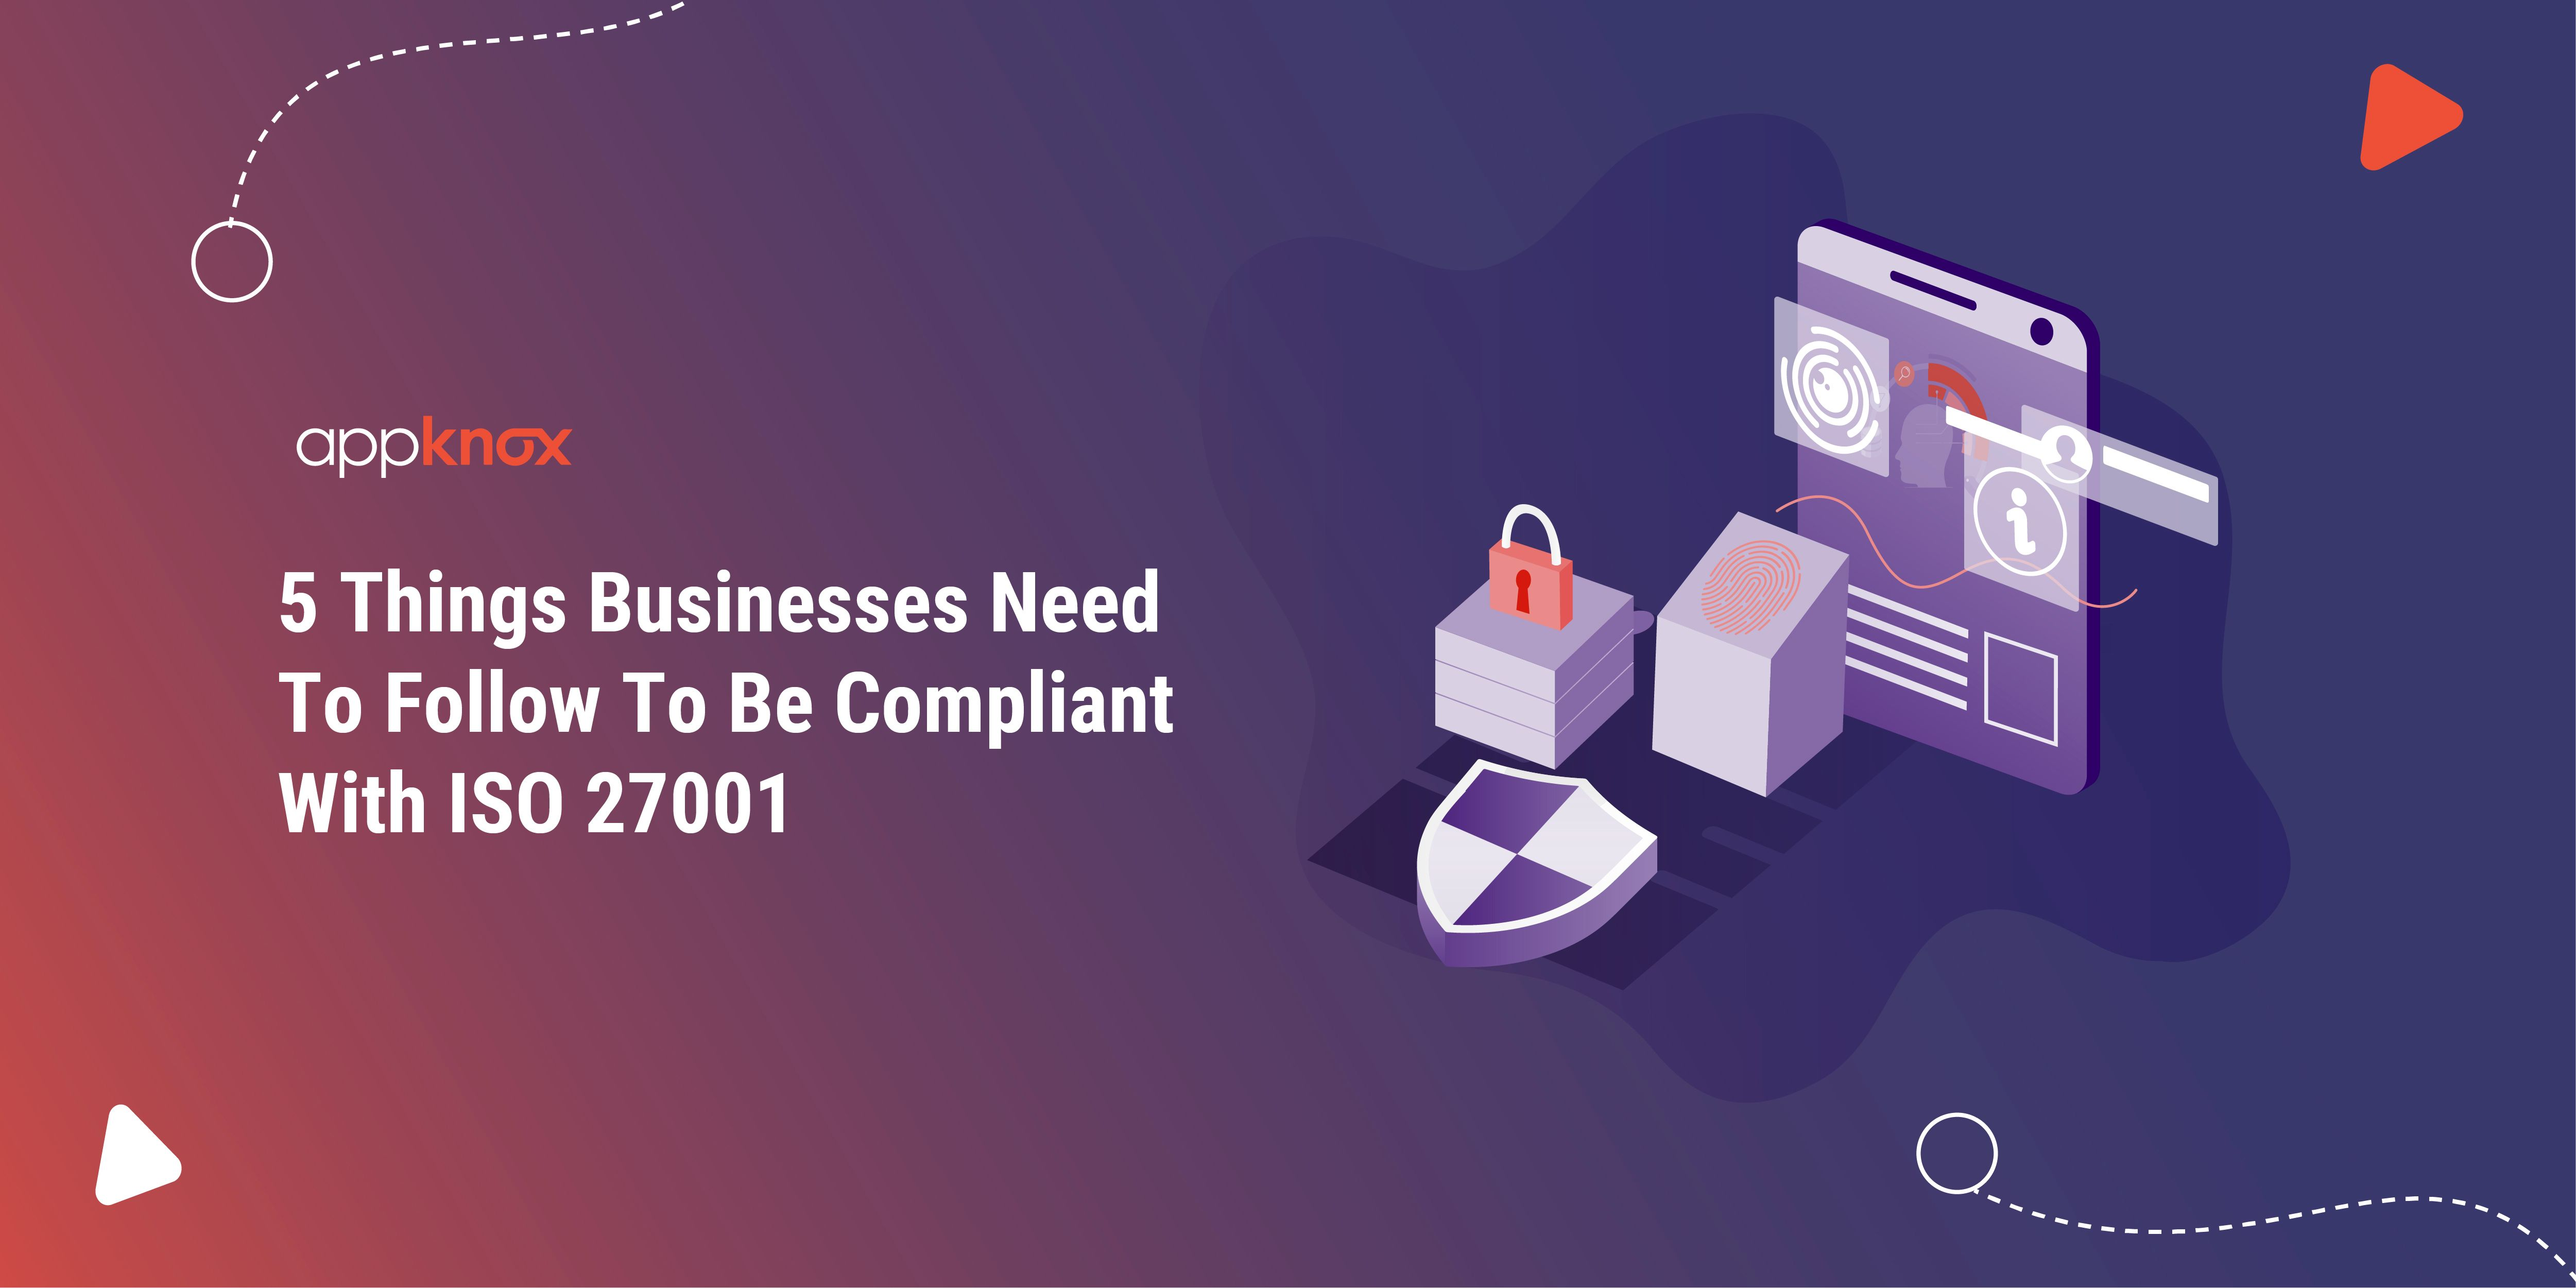 5 Things Businesses Need To Follow To Be Compliant With ISO 27001